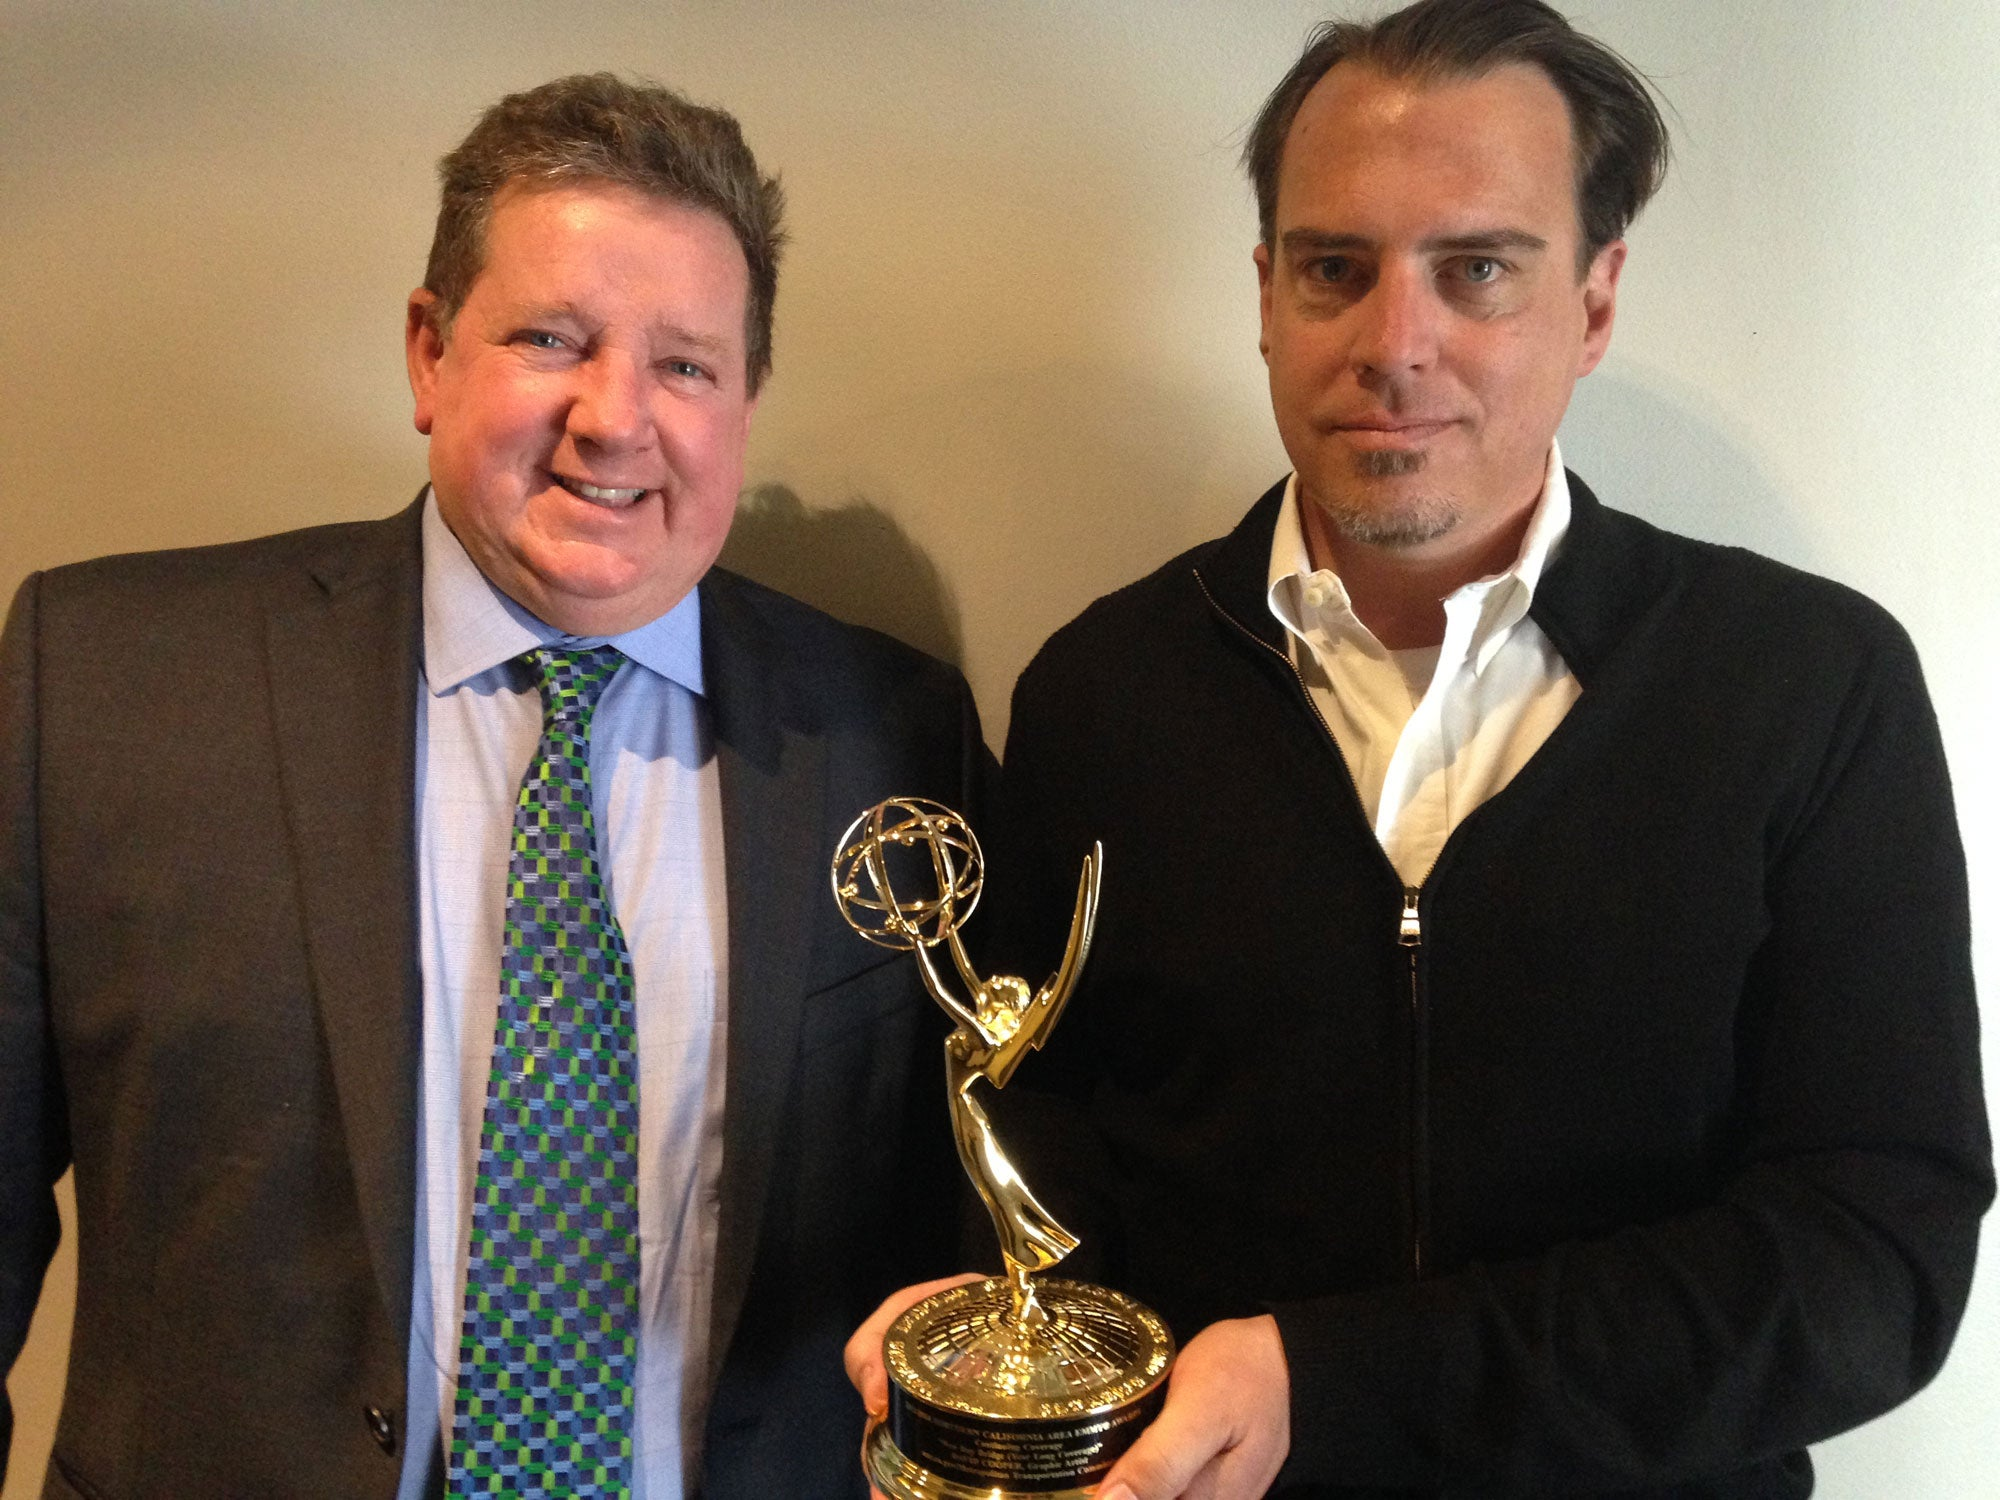 Emmy award for coverage of East Span SFOBB construction